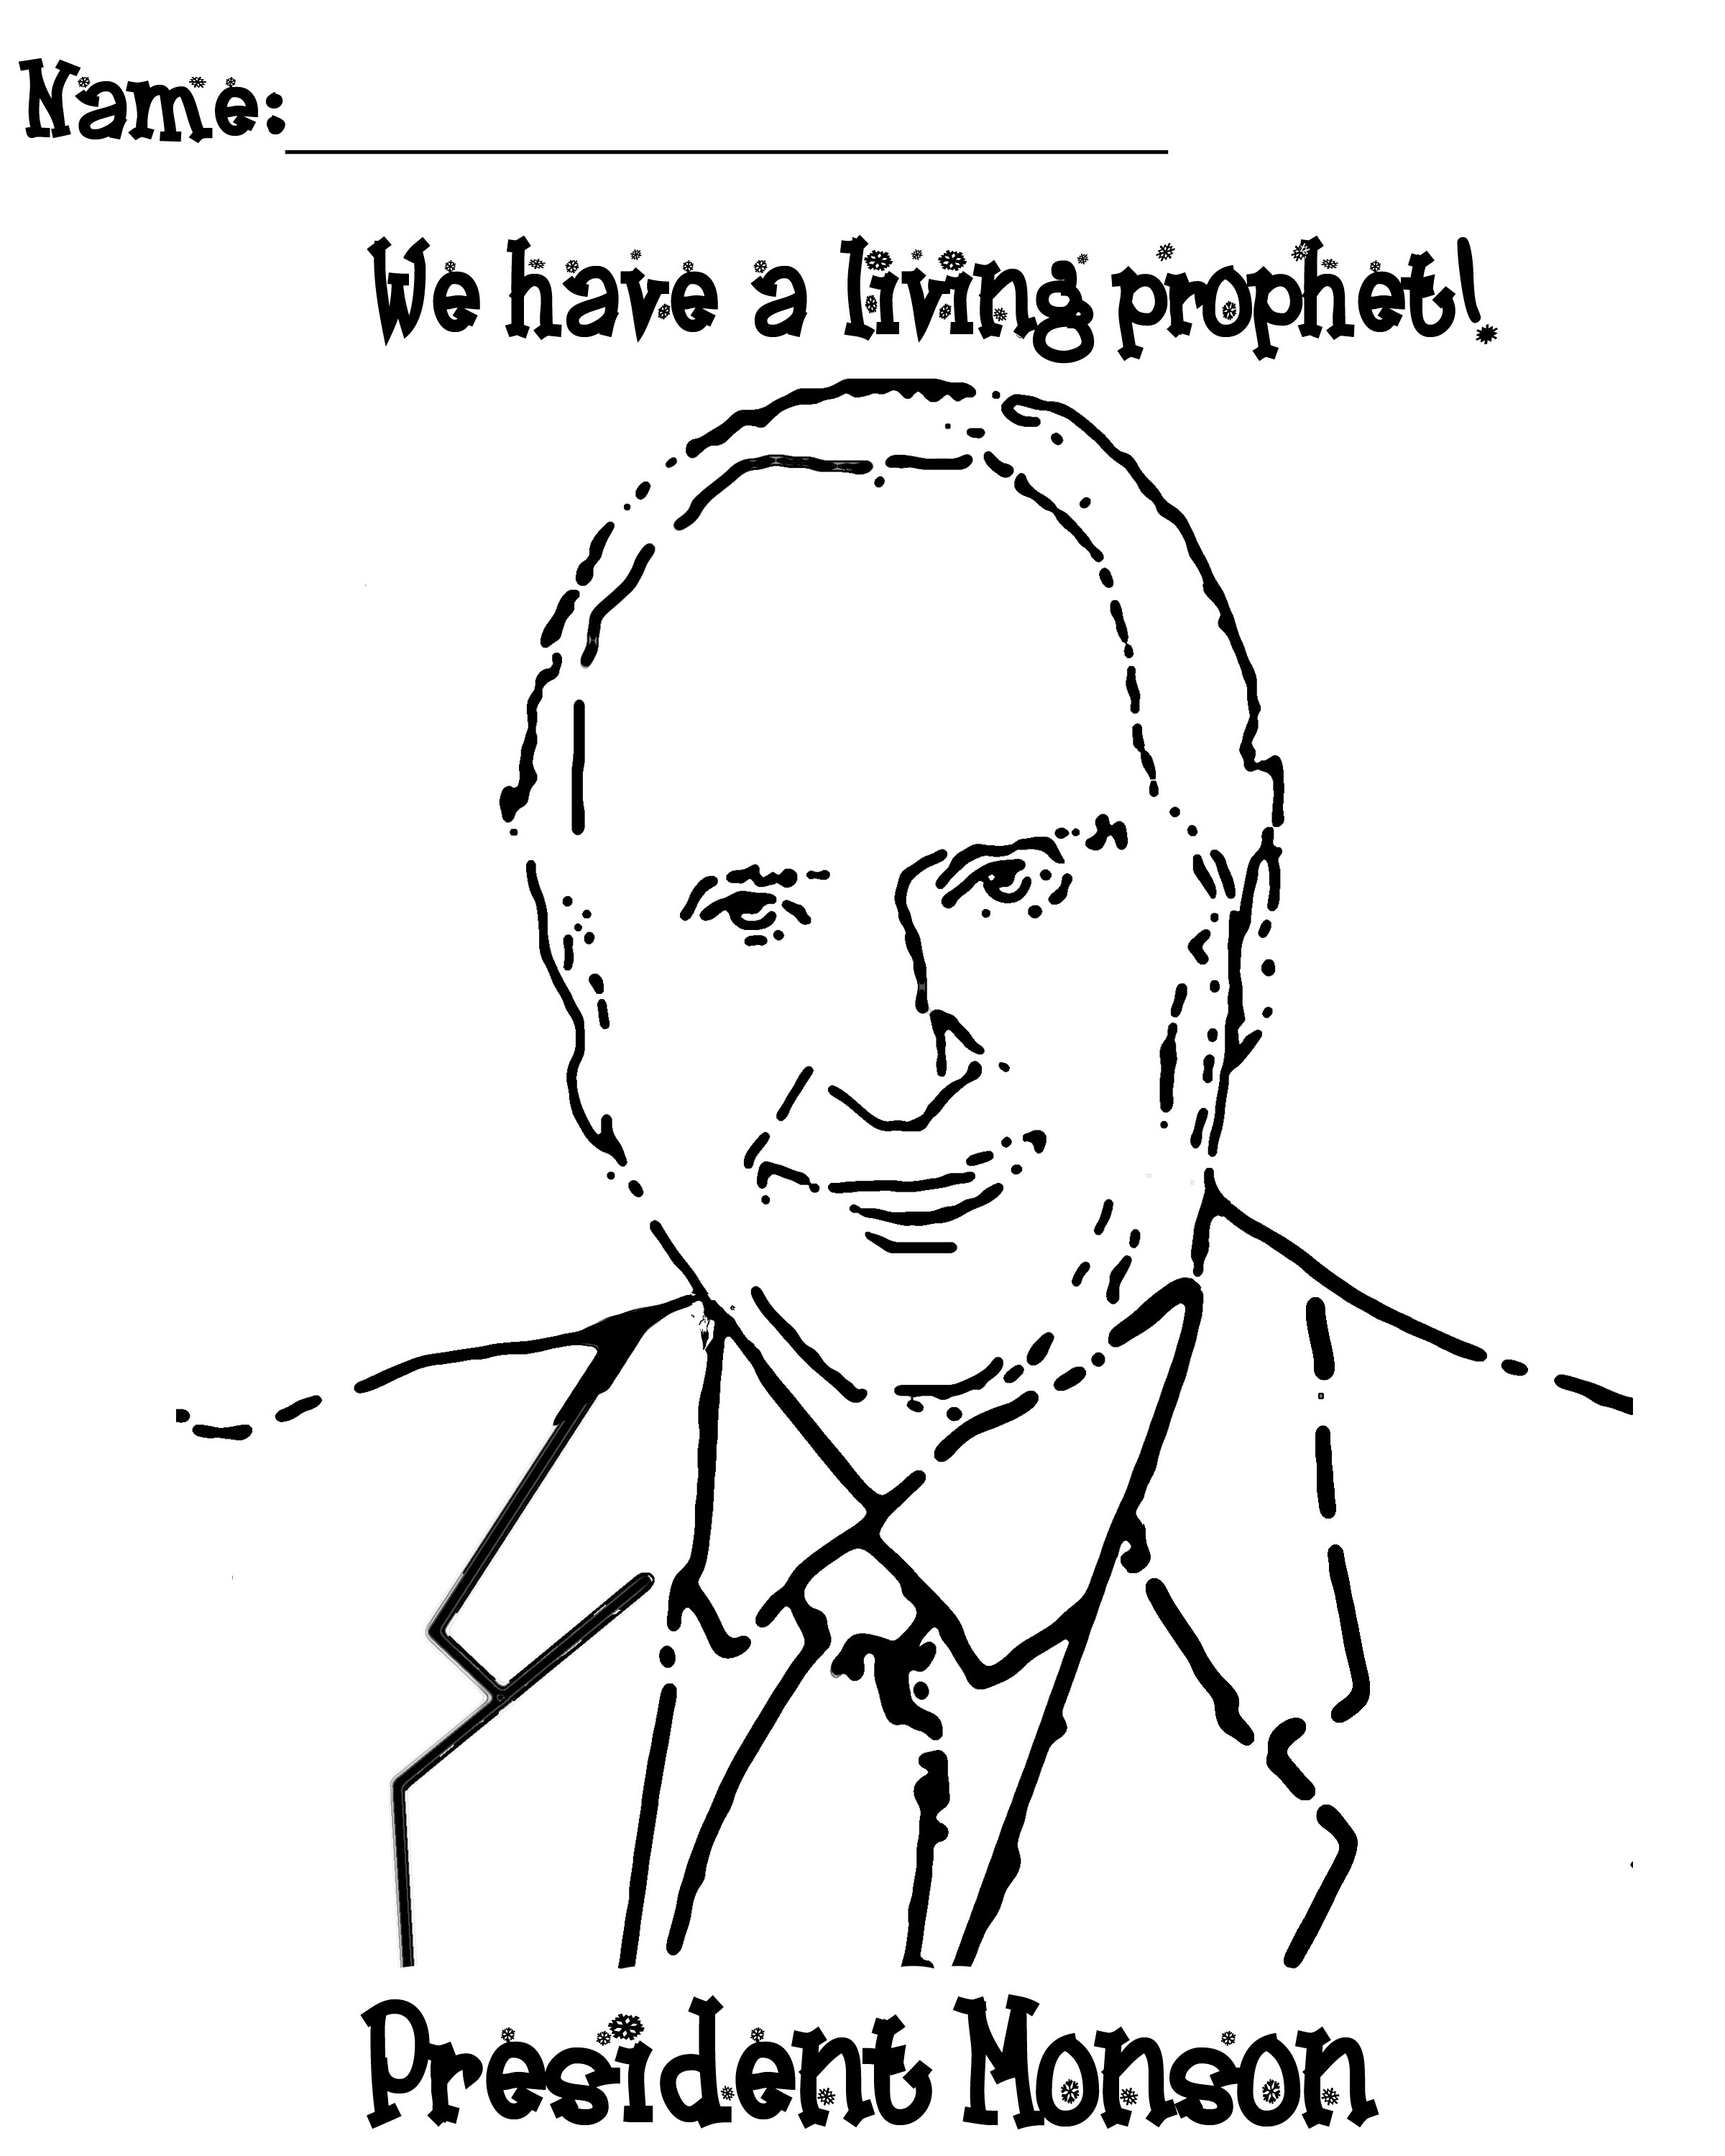 thomas s monson coloring page president monson coloring page jenny smith 39 s lds ideas